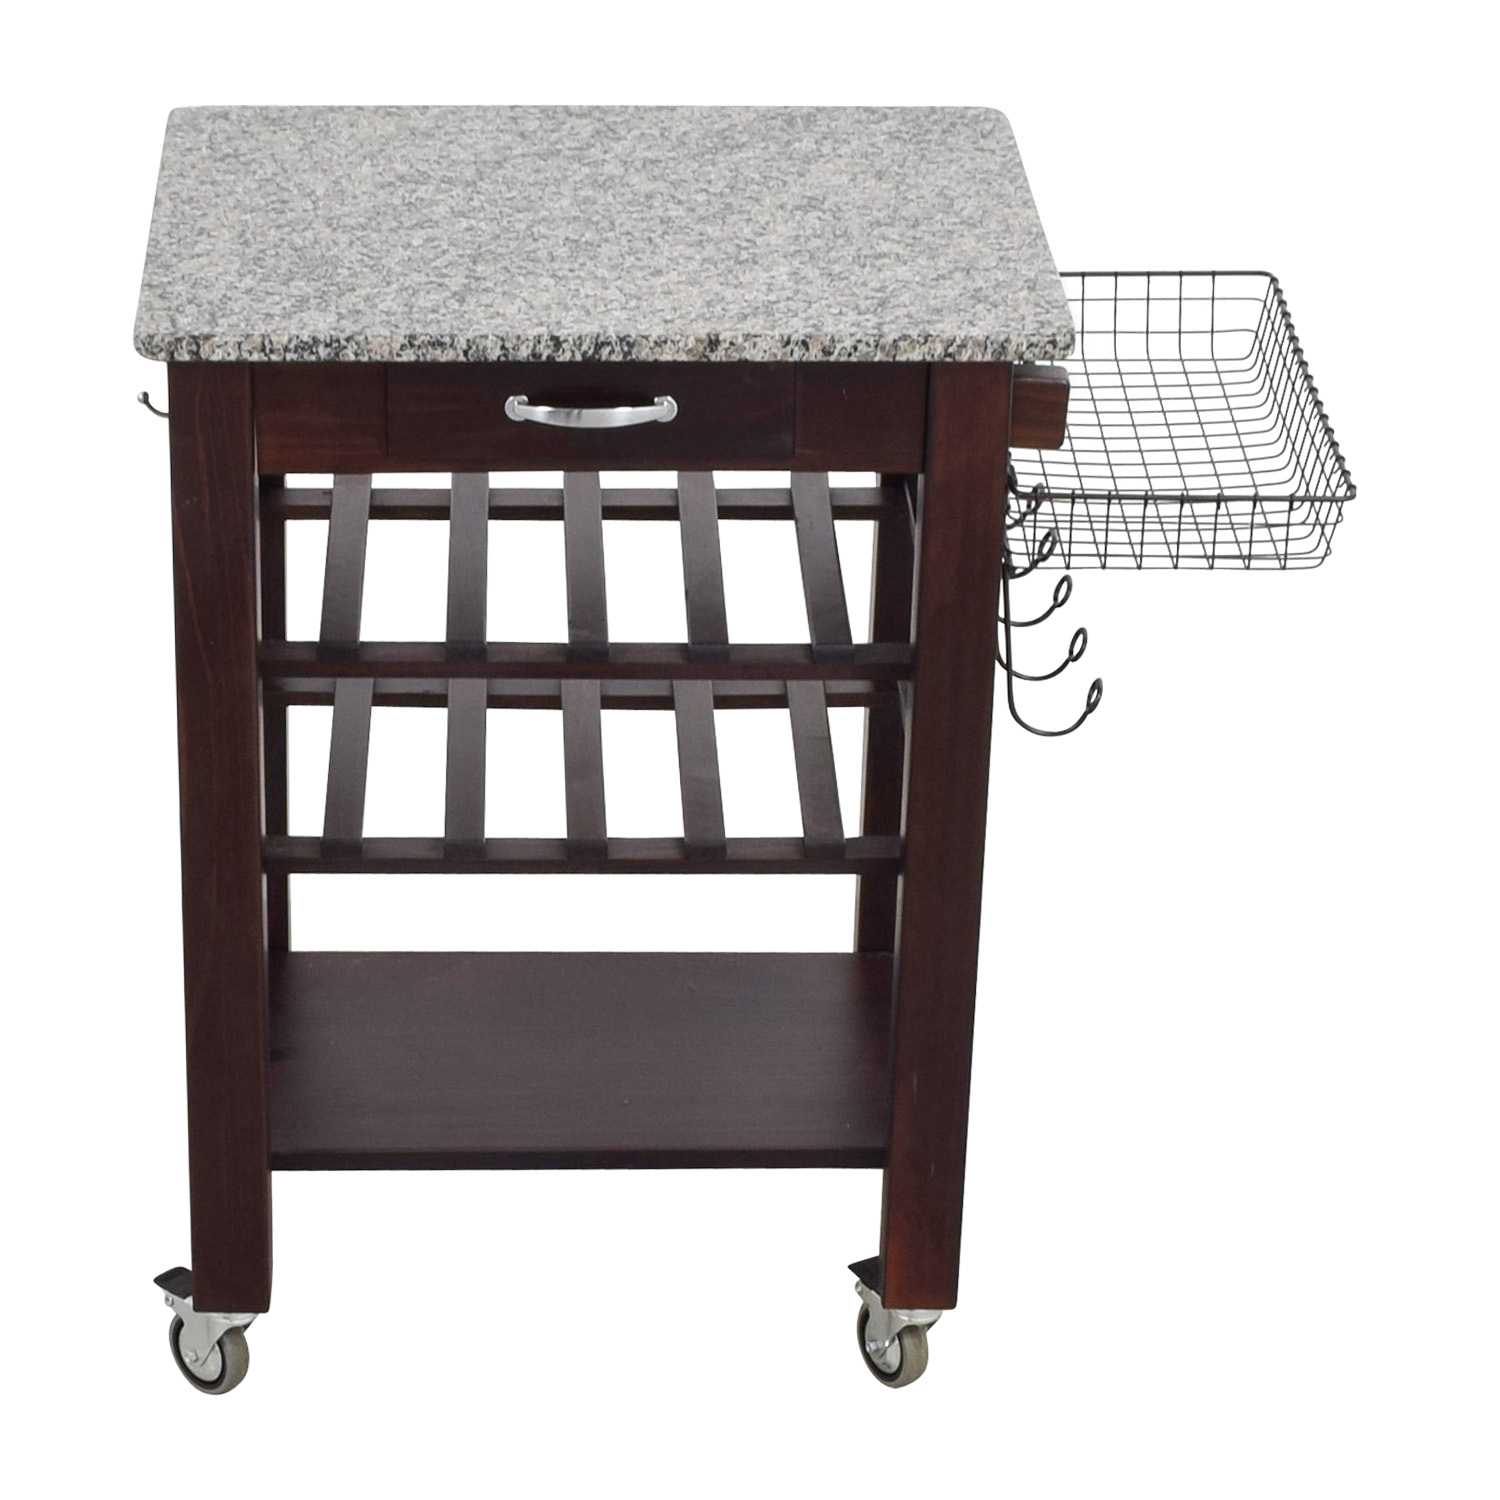 Home Goods Home Goods Marble Top and Wood Base Kitchen Cart price